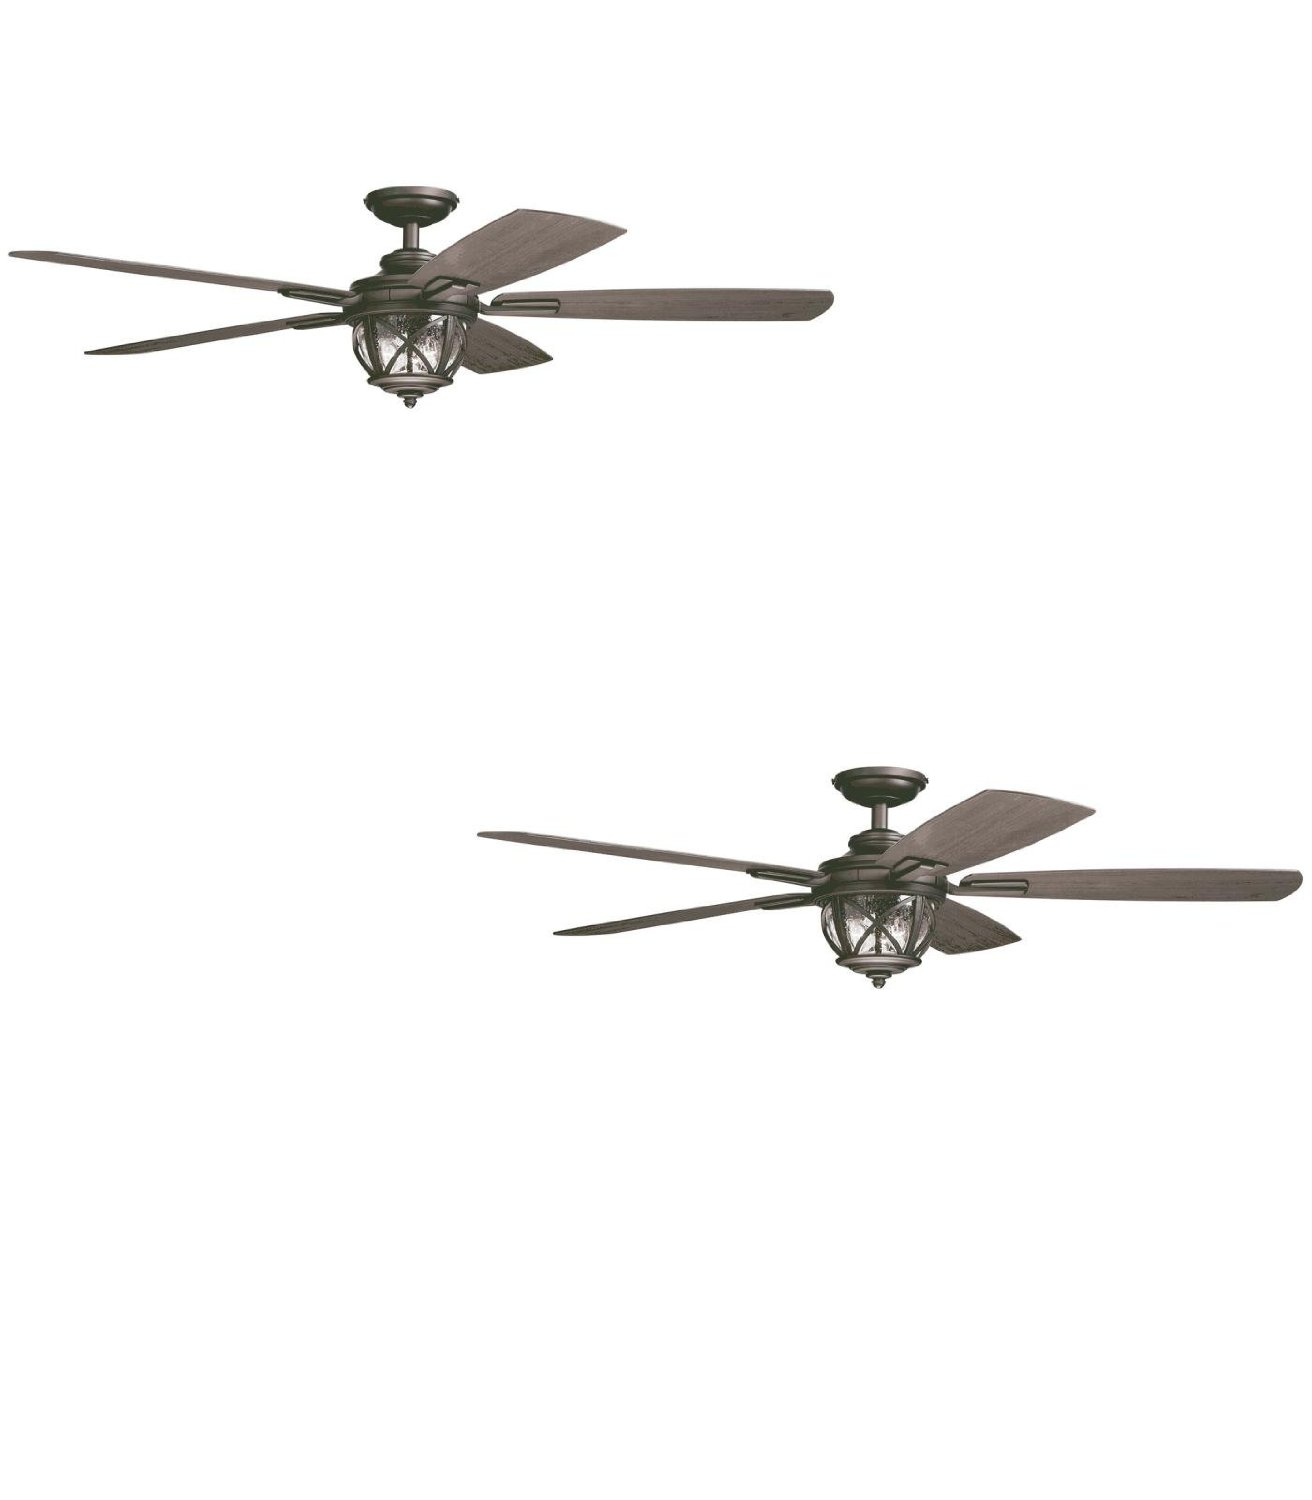 of oil bronze en image downrod fan emerson shop ceiling rubbed